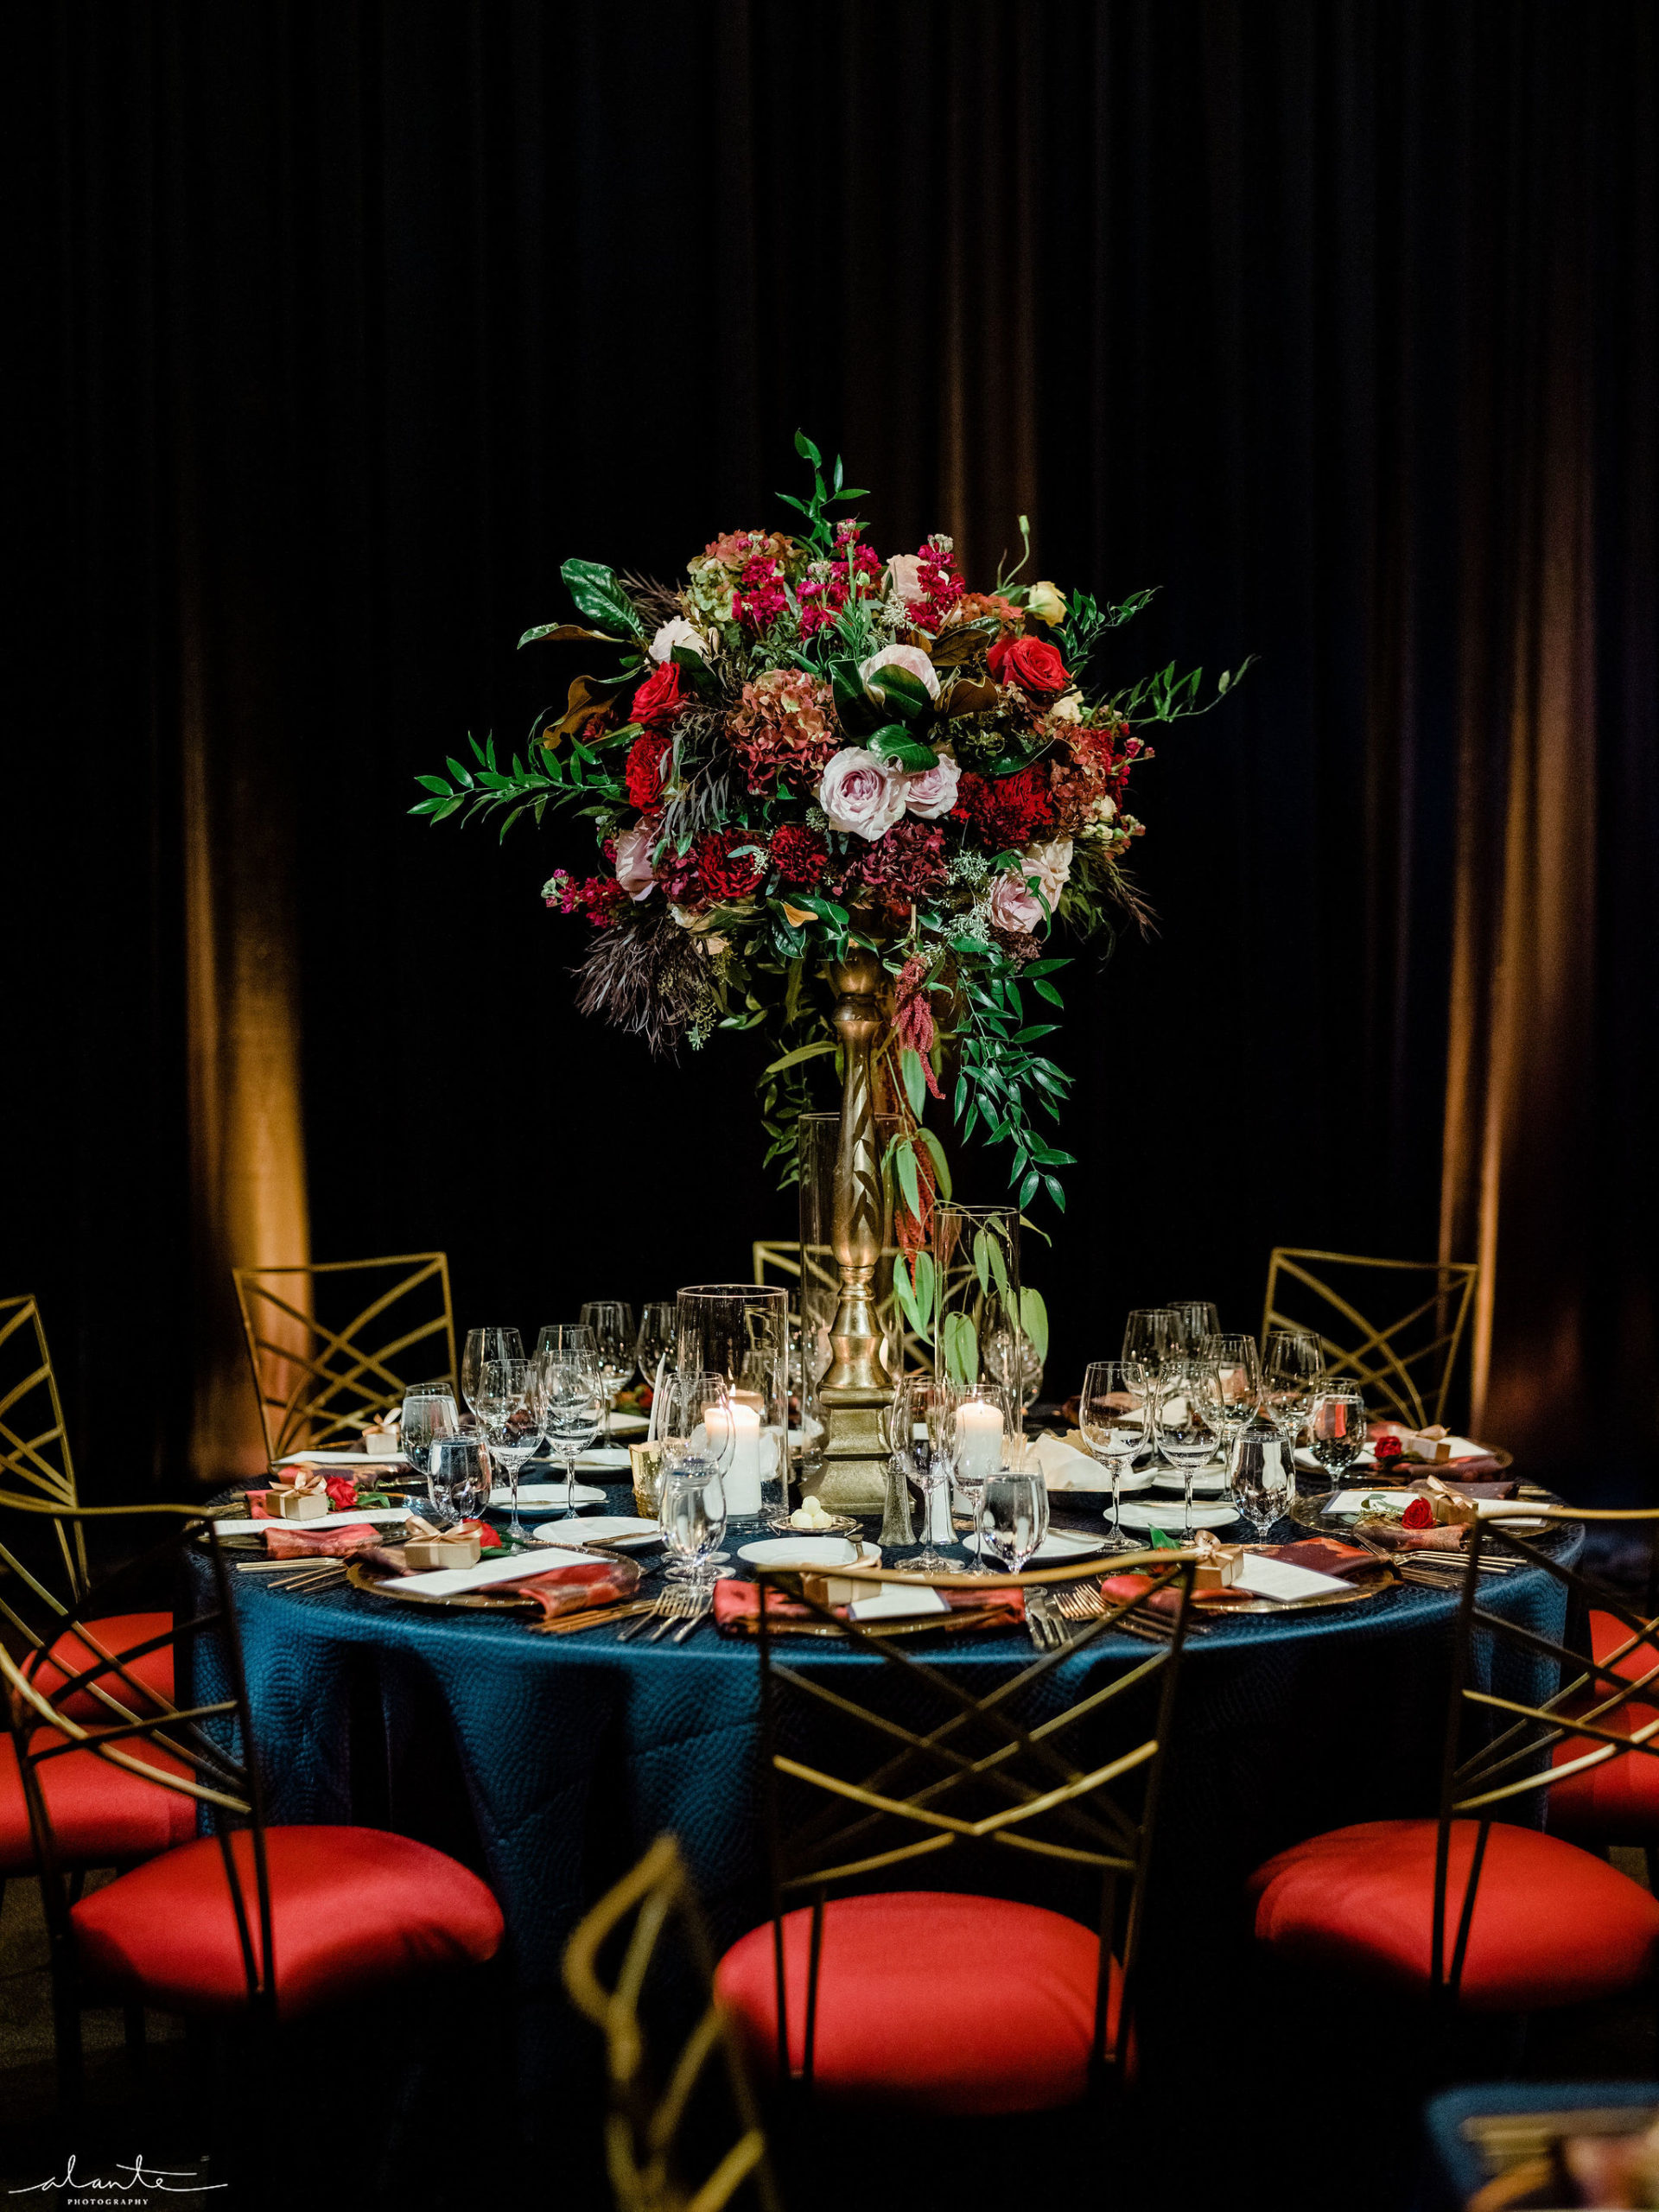 Navy blue linen with a tall floral centerpiece in burgundy and blush for a winter wedding reception designed by Flora Nova Design Seattle